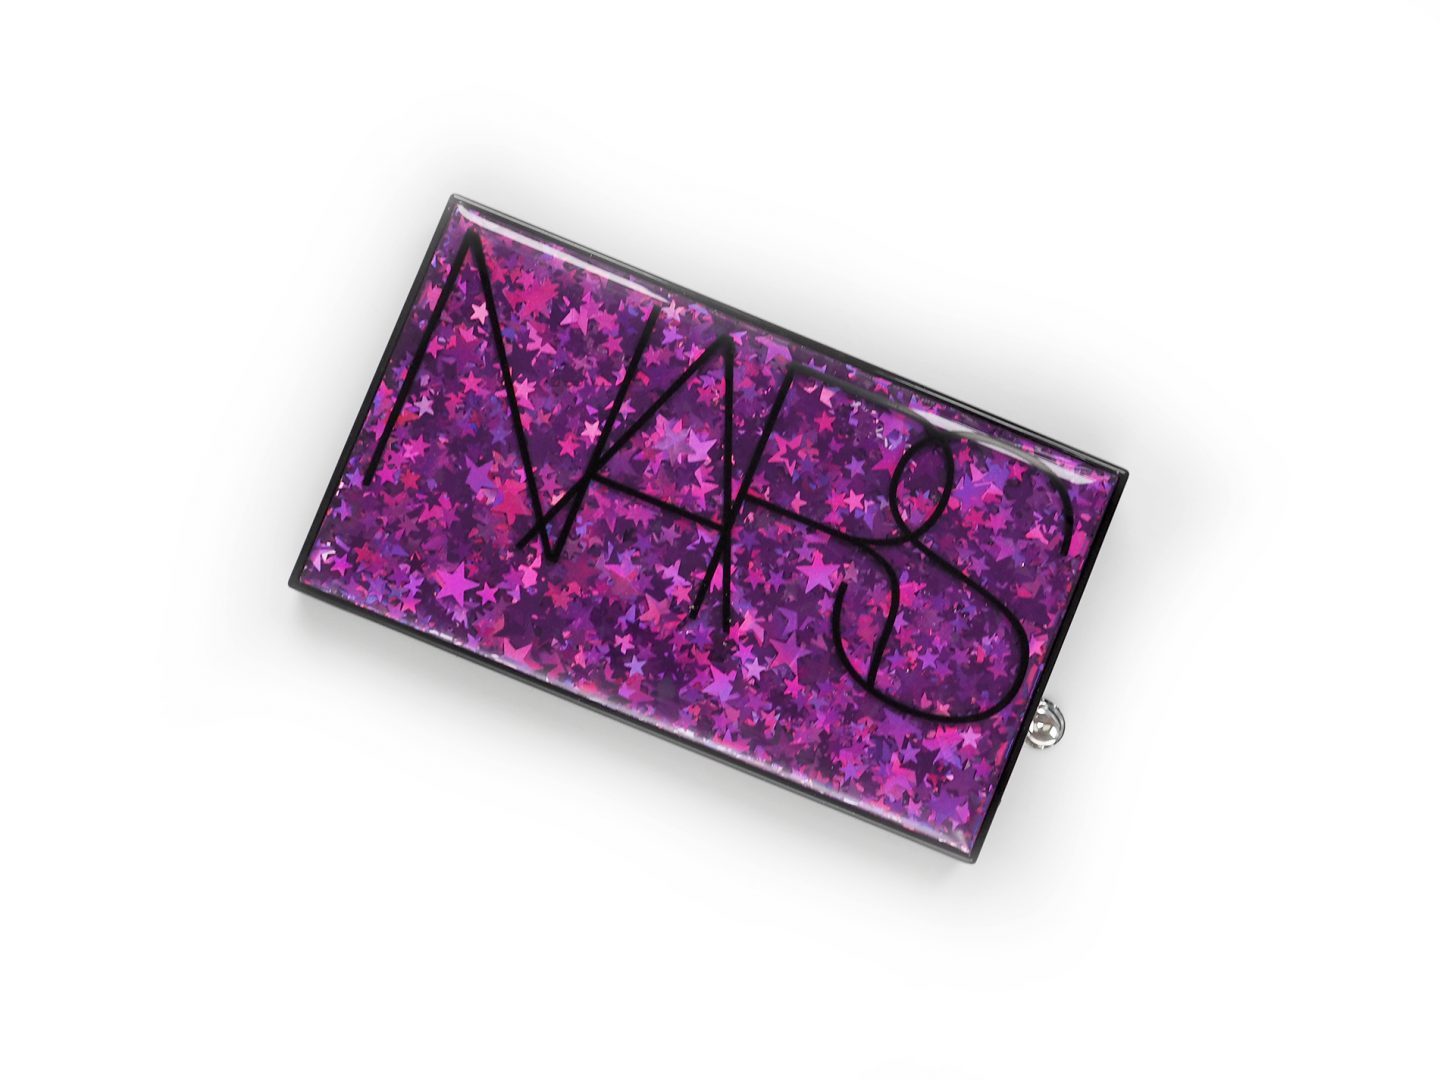 NARS Hyped Eyeshadow Palette Studio 54